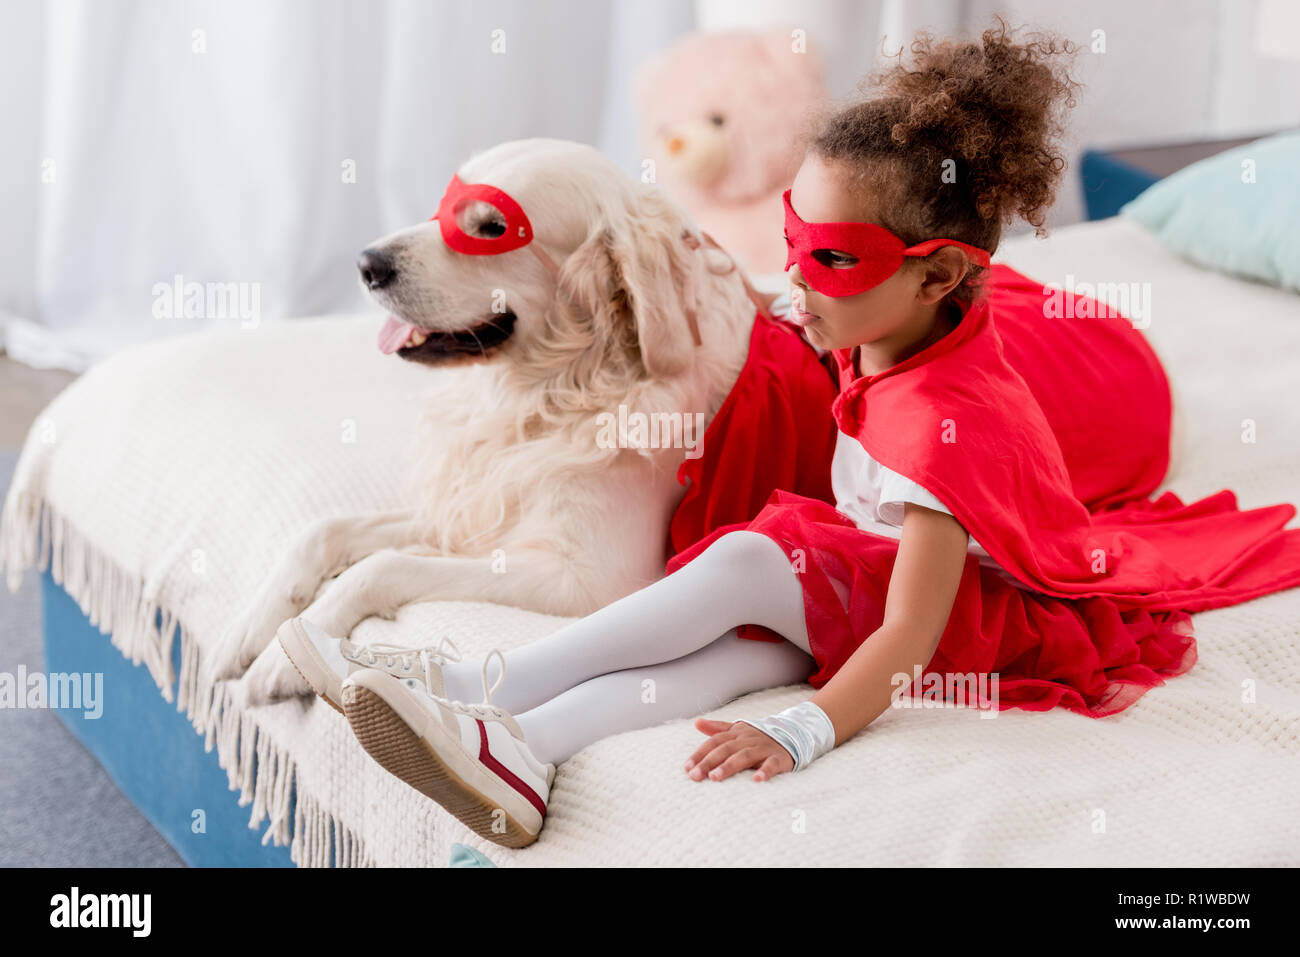 Adorable little african american kid with dog in red superhero costumes sitting on bed - Stock Image